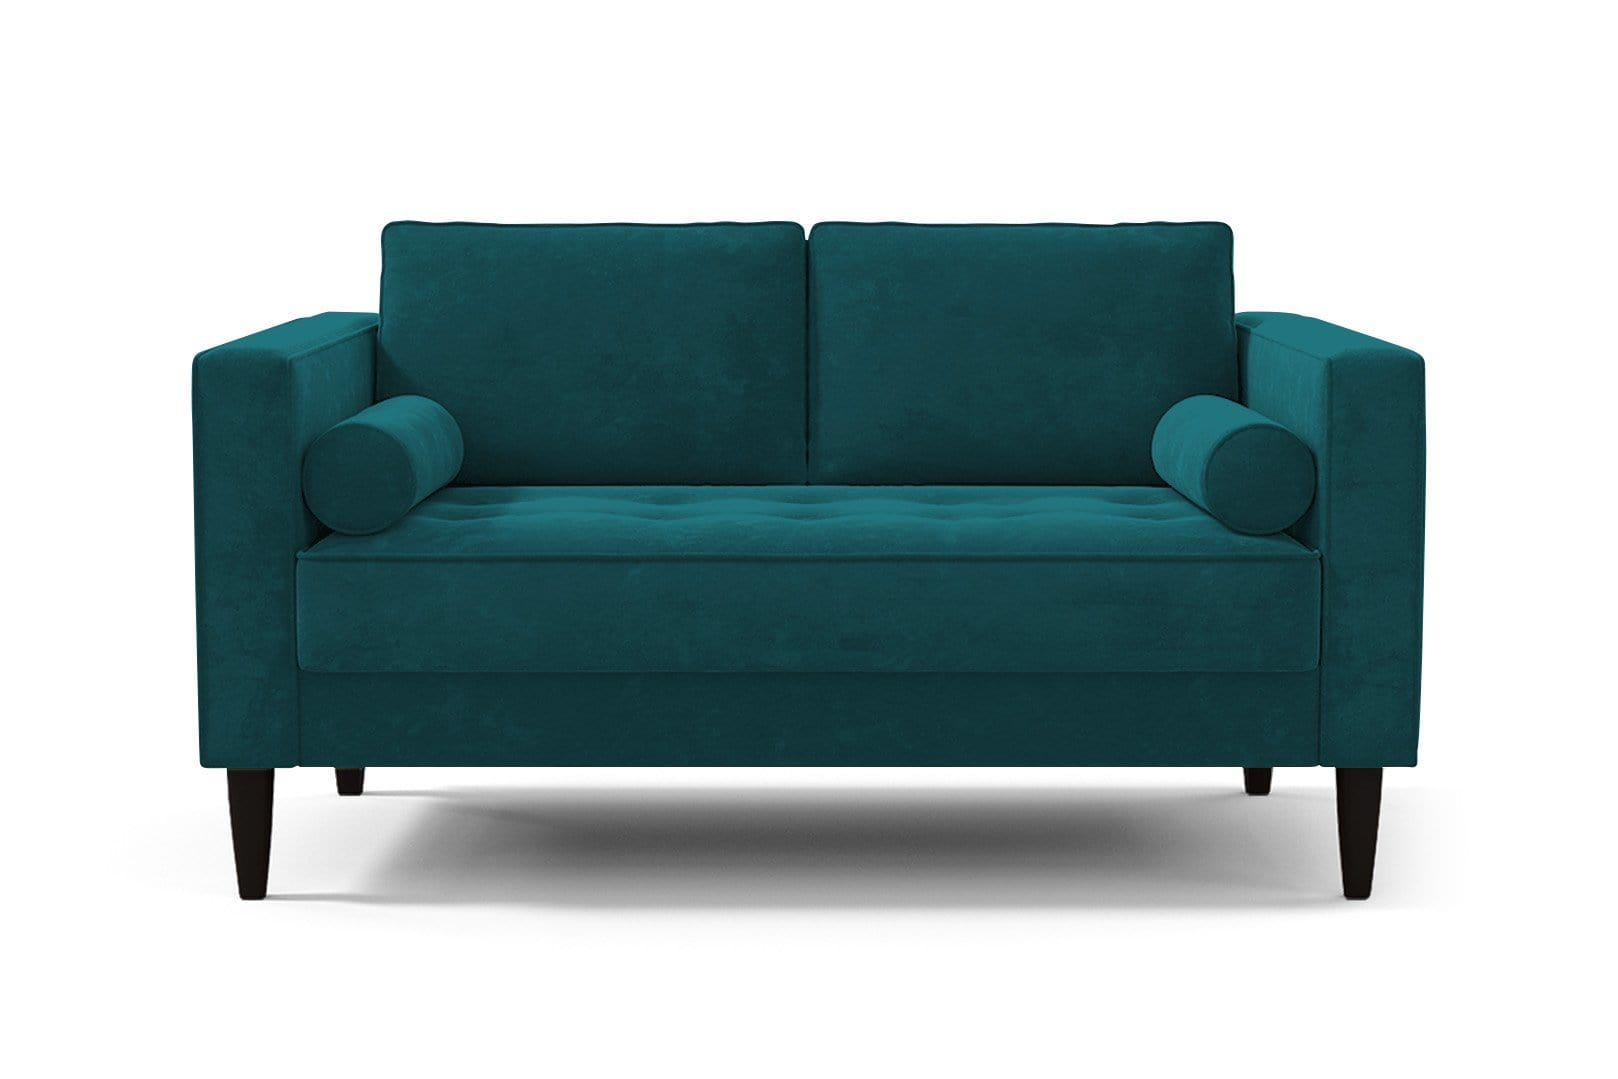 Delilah Loveseat - Green Velvet - Small Space Modern Couch Made in the USA - Sold by Apt2B